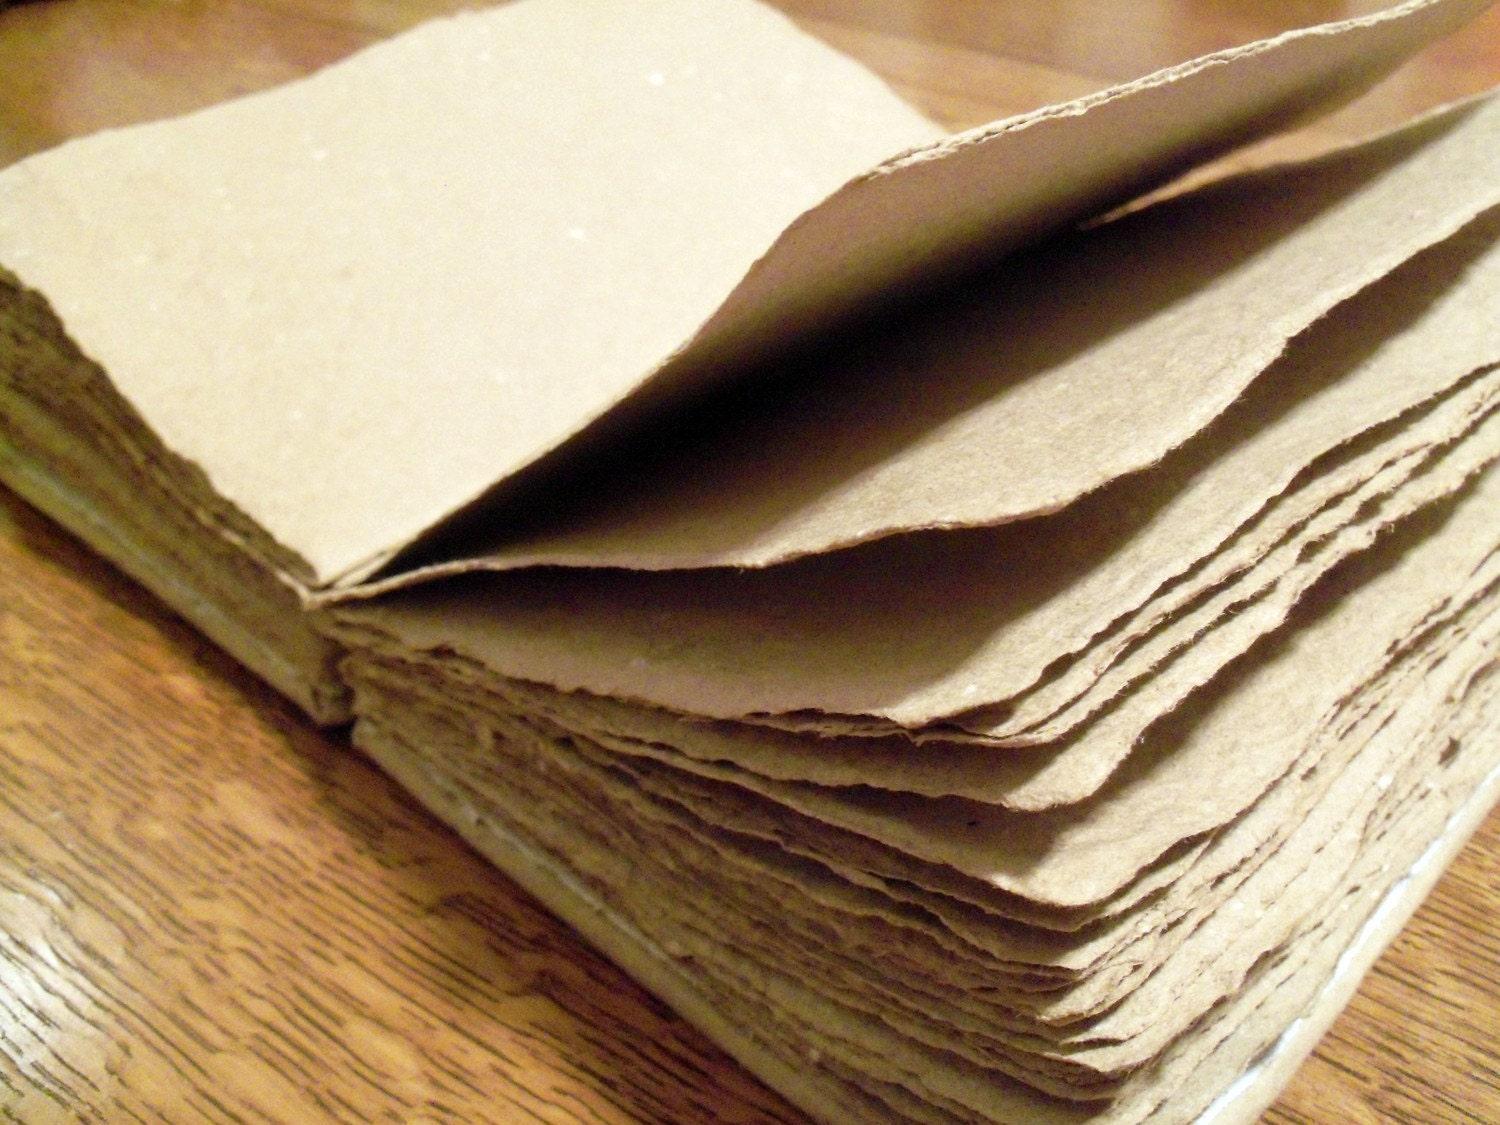 Brown recycled journal with handmade paper pages